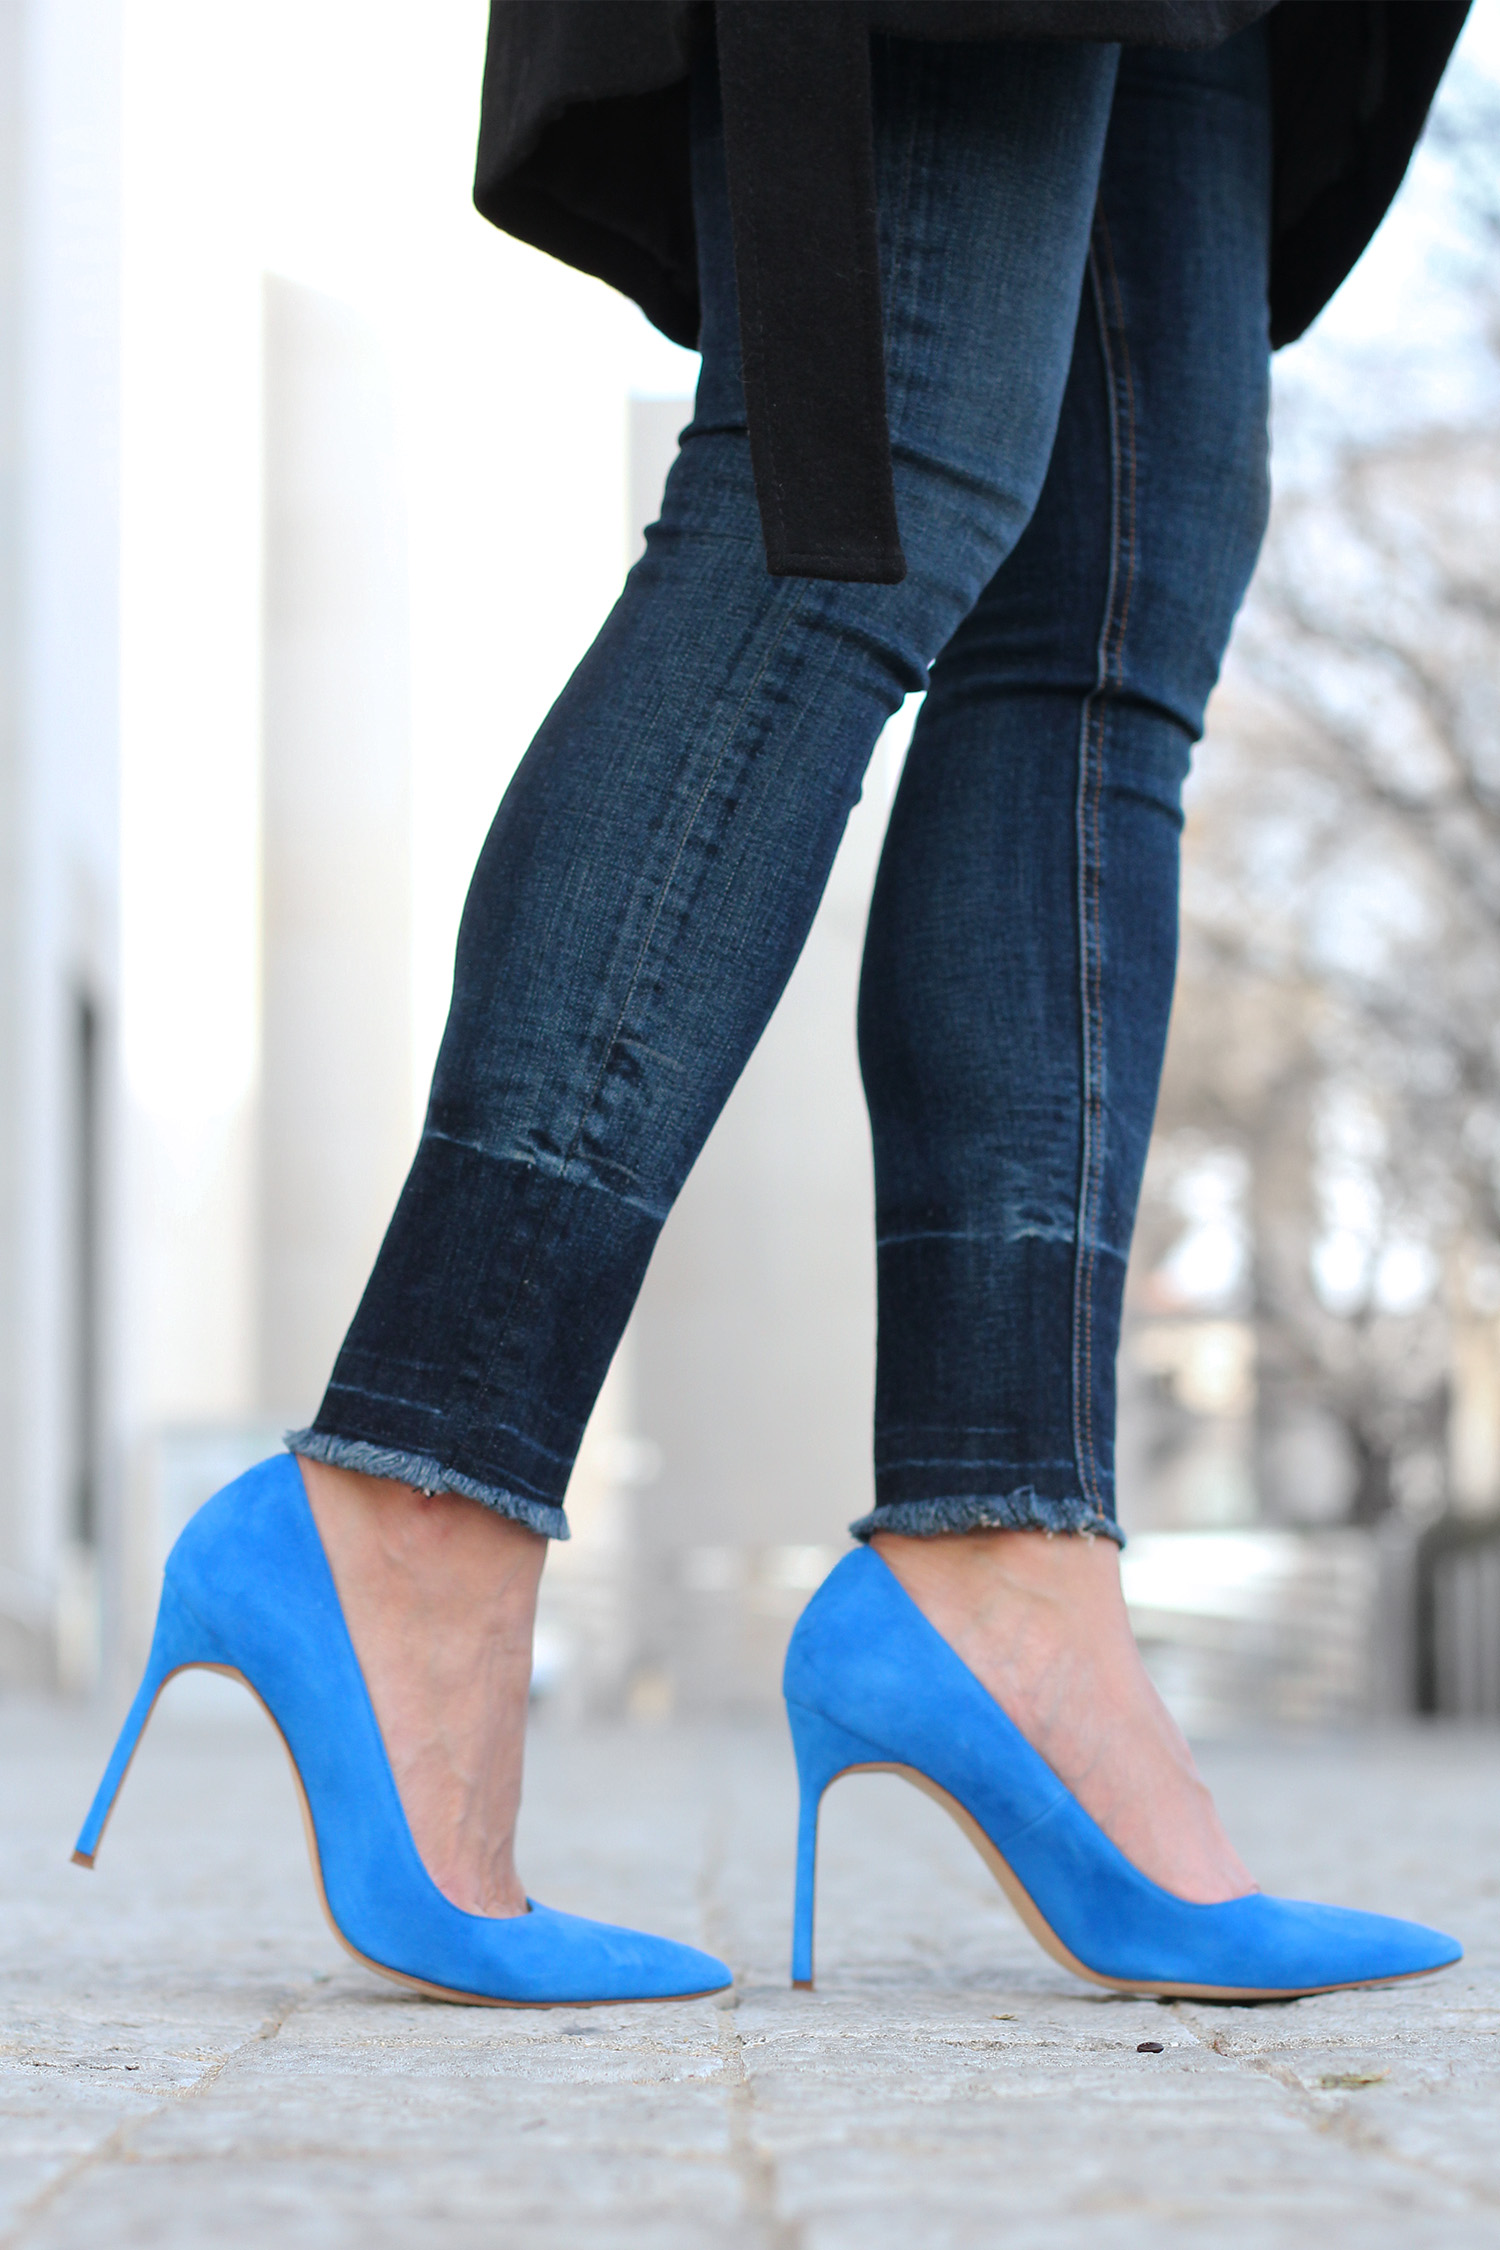 Manolo Blahnik BB Pumps; Blue Suede Pumps